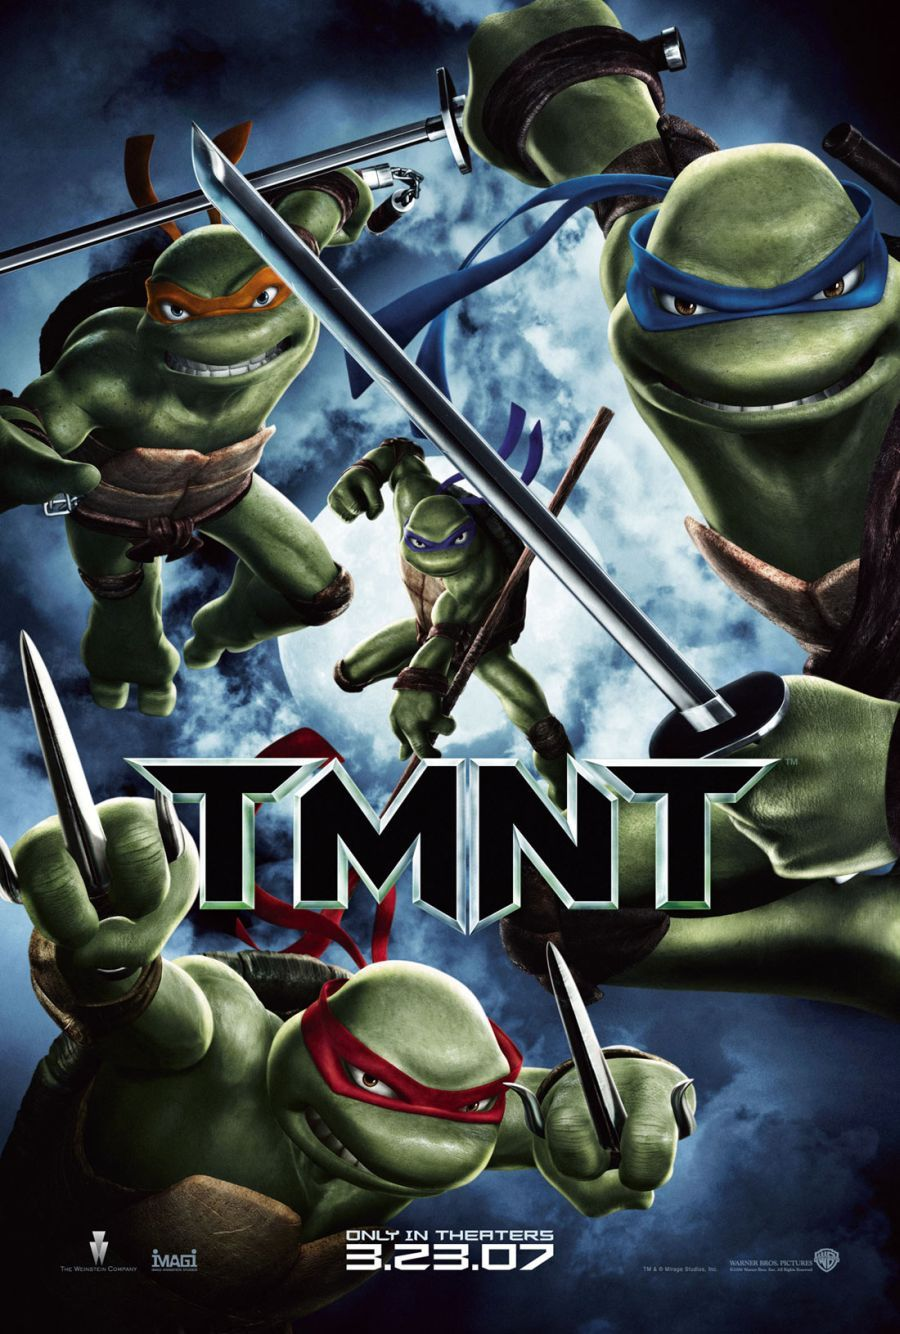 teenage_mutant_ninja_turtles_2007_teaser1.jpg